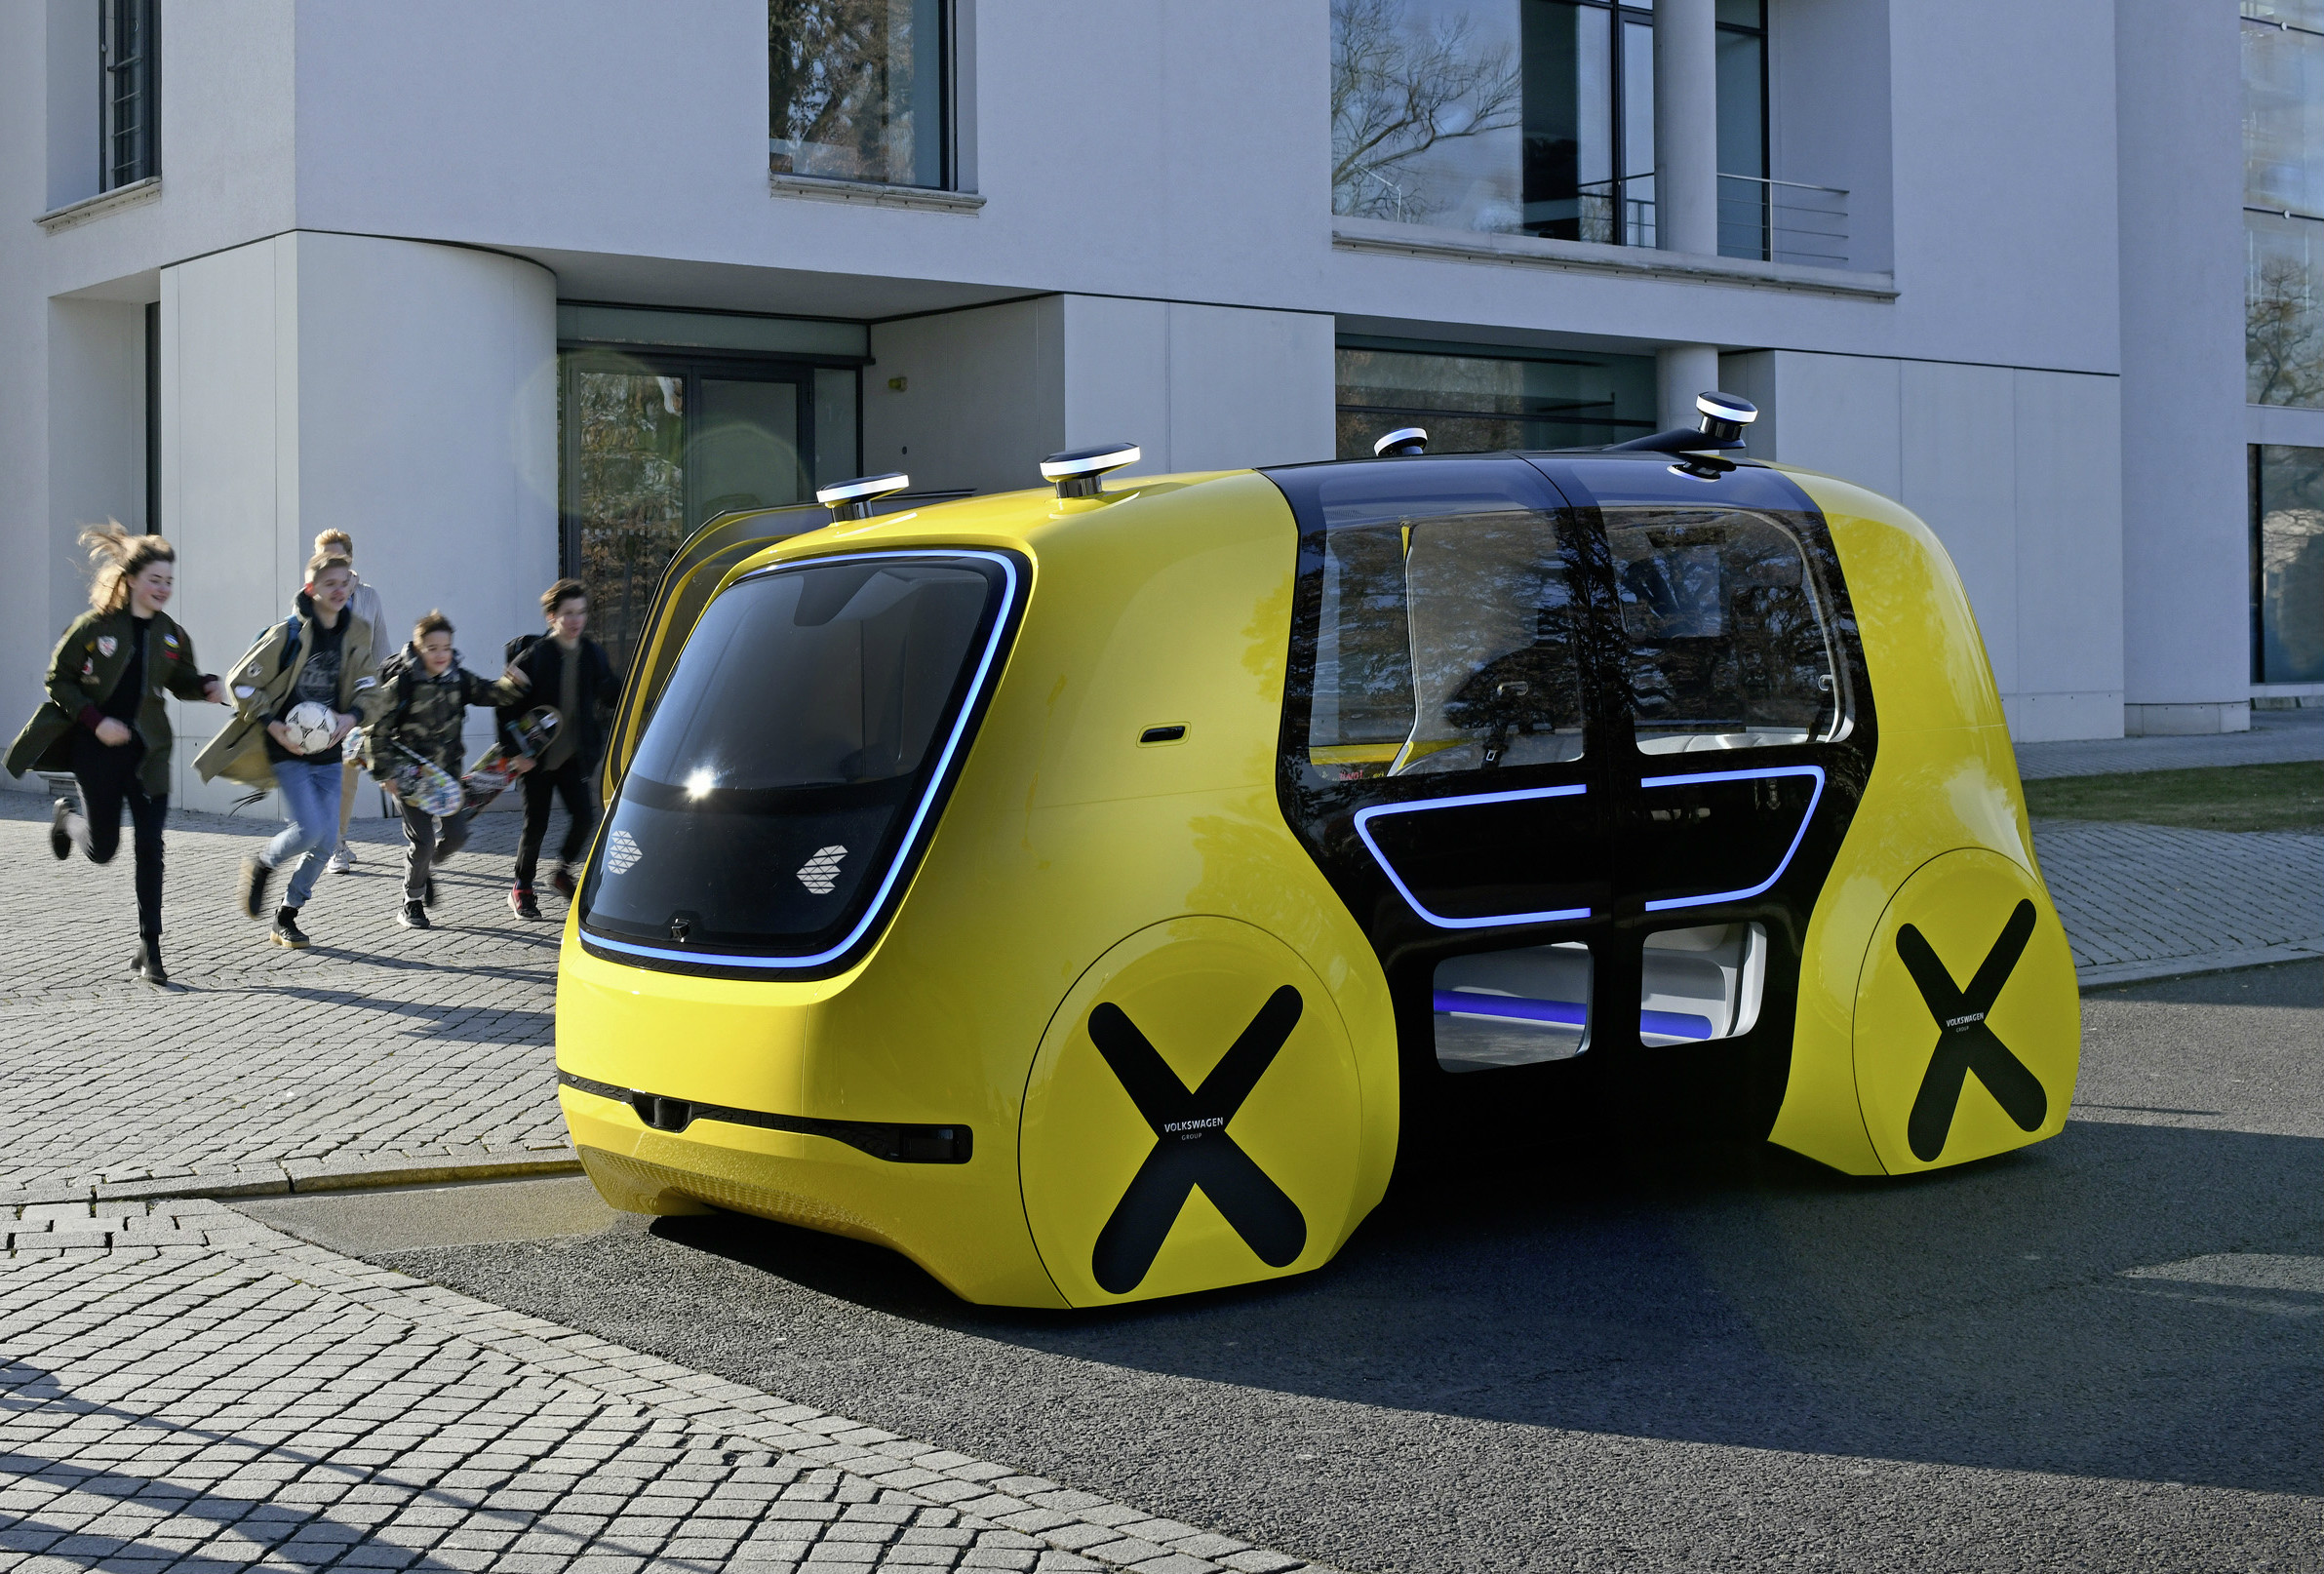 Two of the world's biggest automakers are thinking, and riding, outside the box with their latest driverless vehicle concepts.